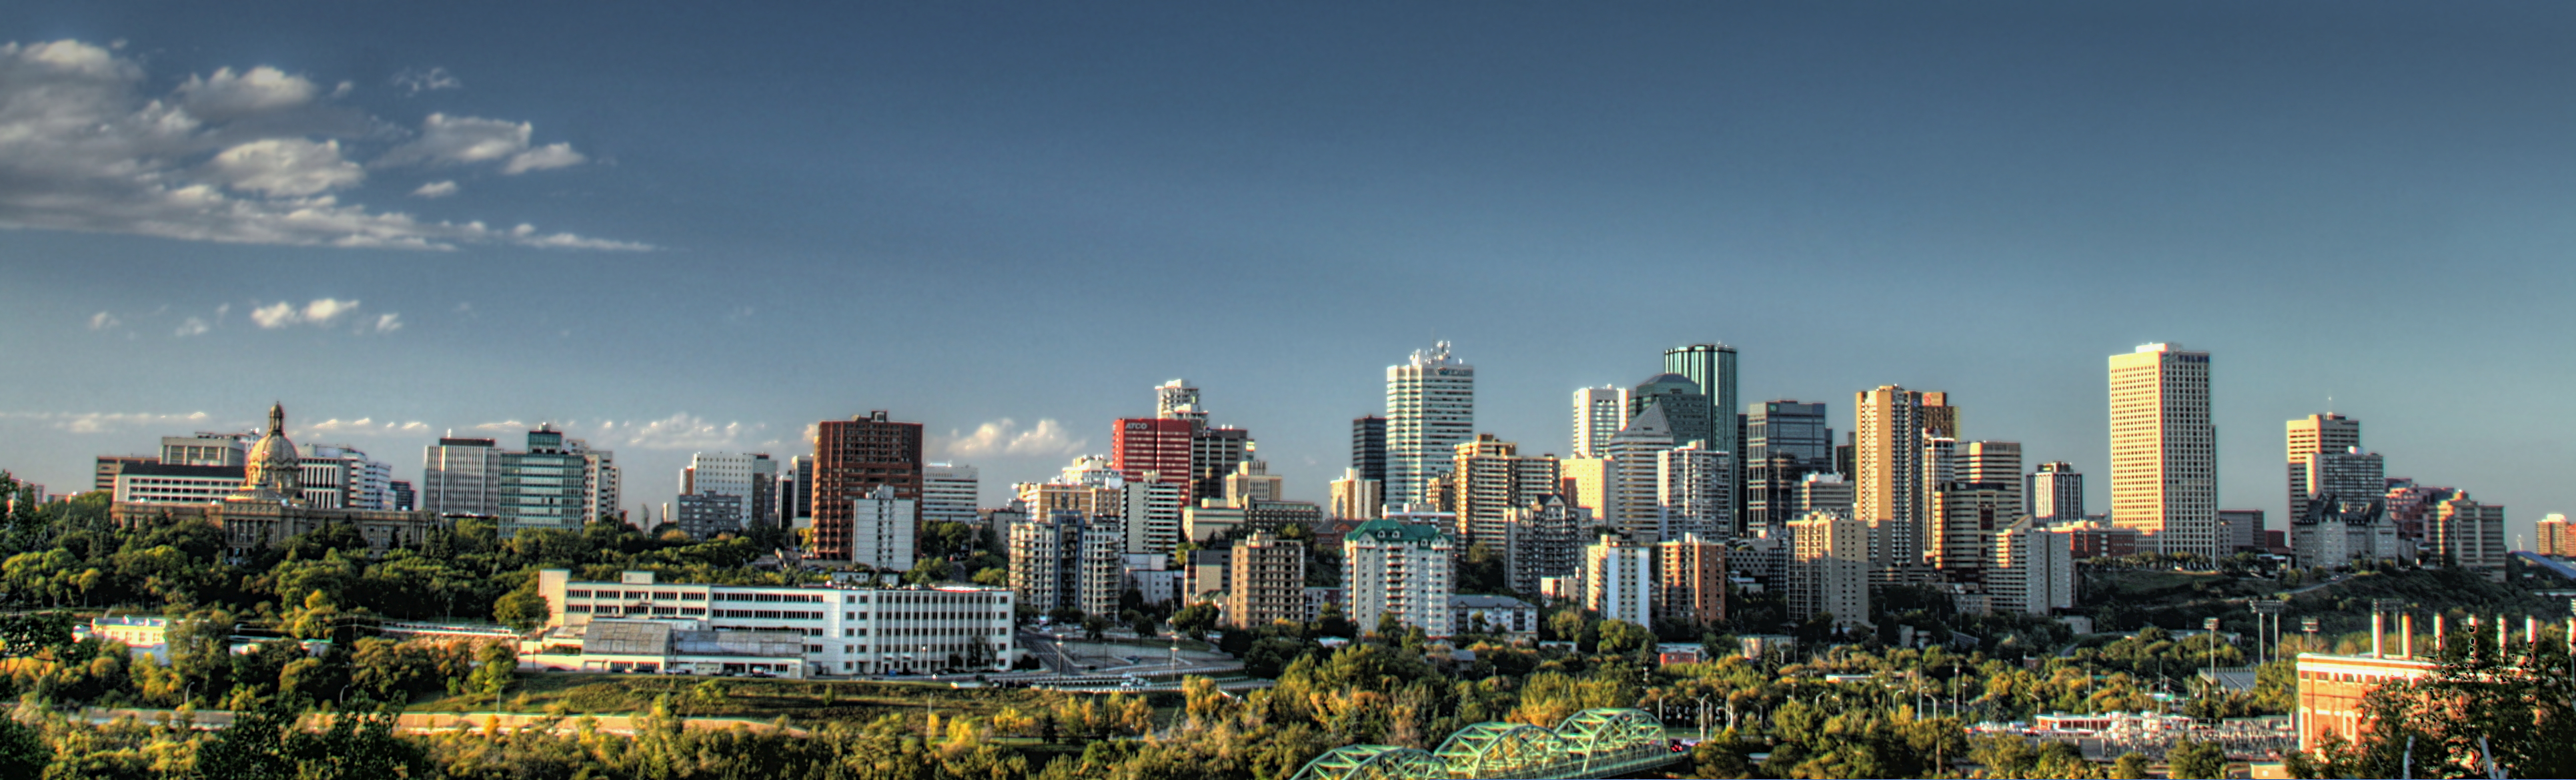 canada city skyline - photo #31